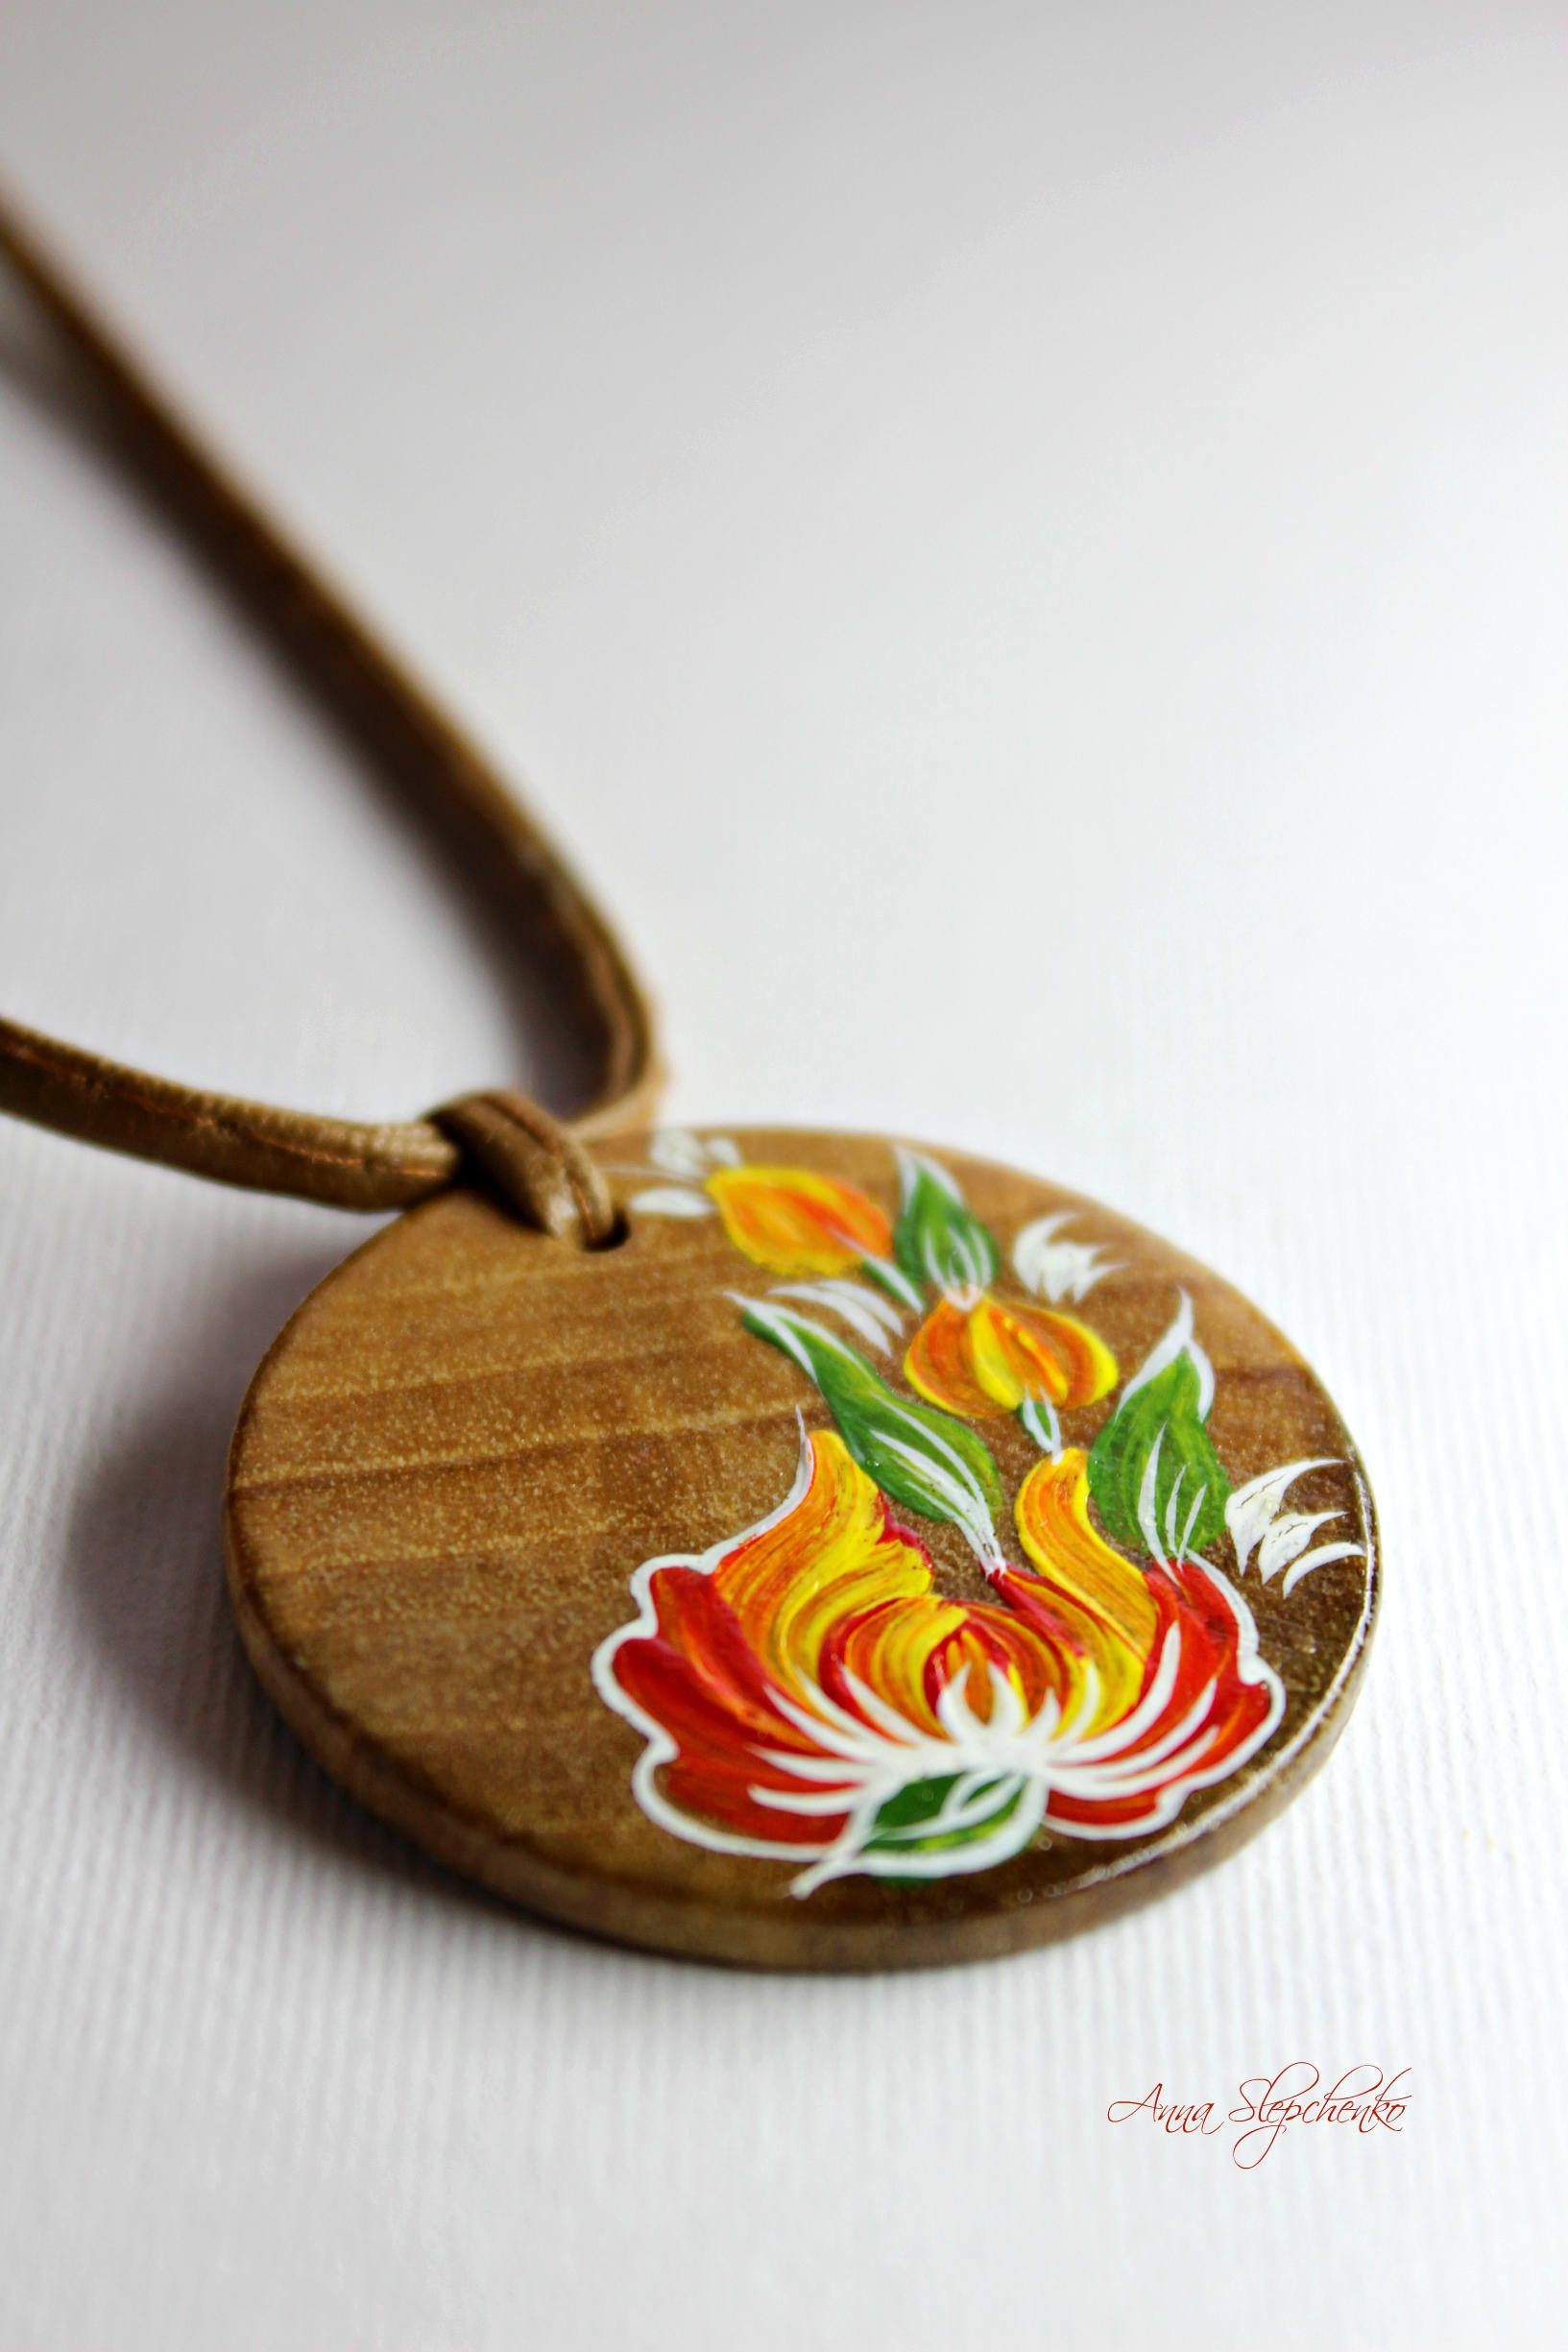 Wooden Pendant With Hand Painted Neck Decoration Pendant Etsy Hand Painted Jewelry Painted Jewelry Wooden Necklace